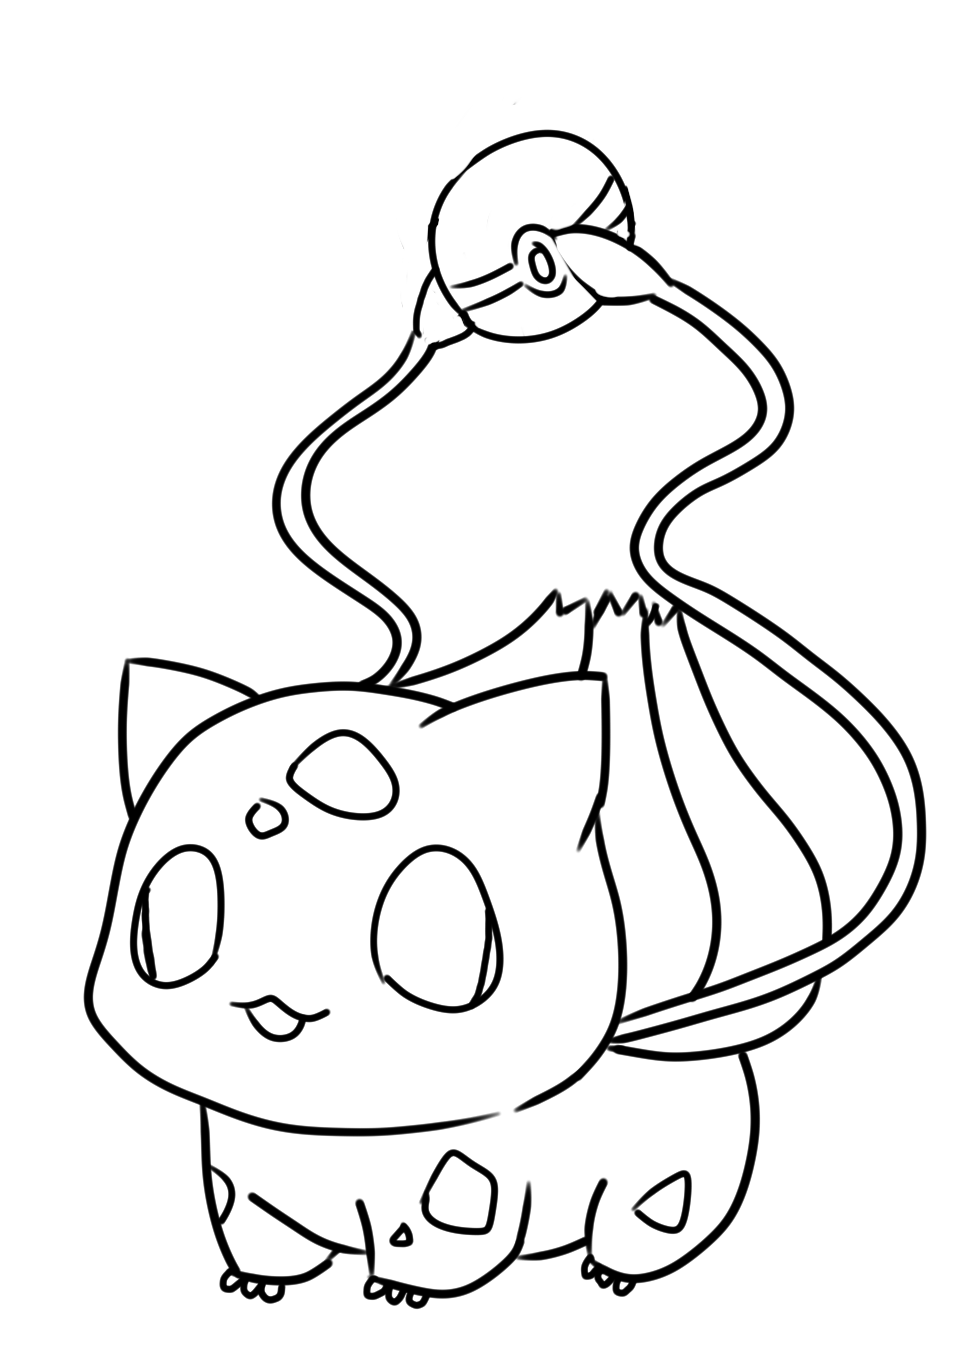 Kawaii Pokemon Bulbasaur Coloring Pages In 2020 Pokemon Coloring Pokemon Bulbasaur Coloring Pages